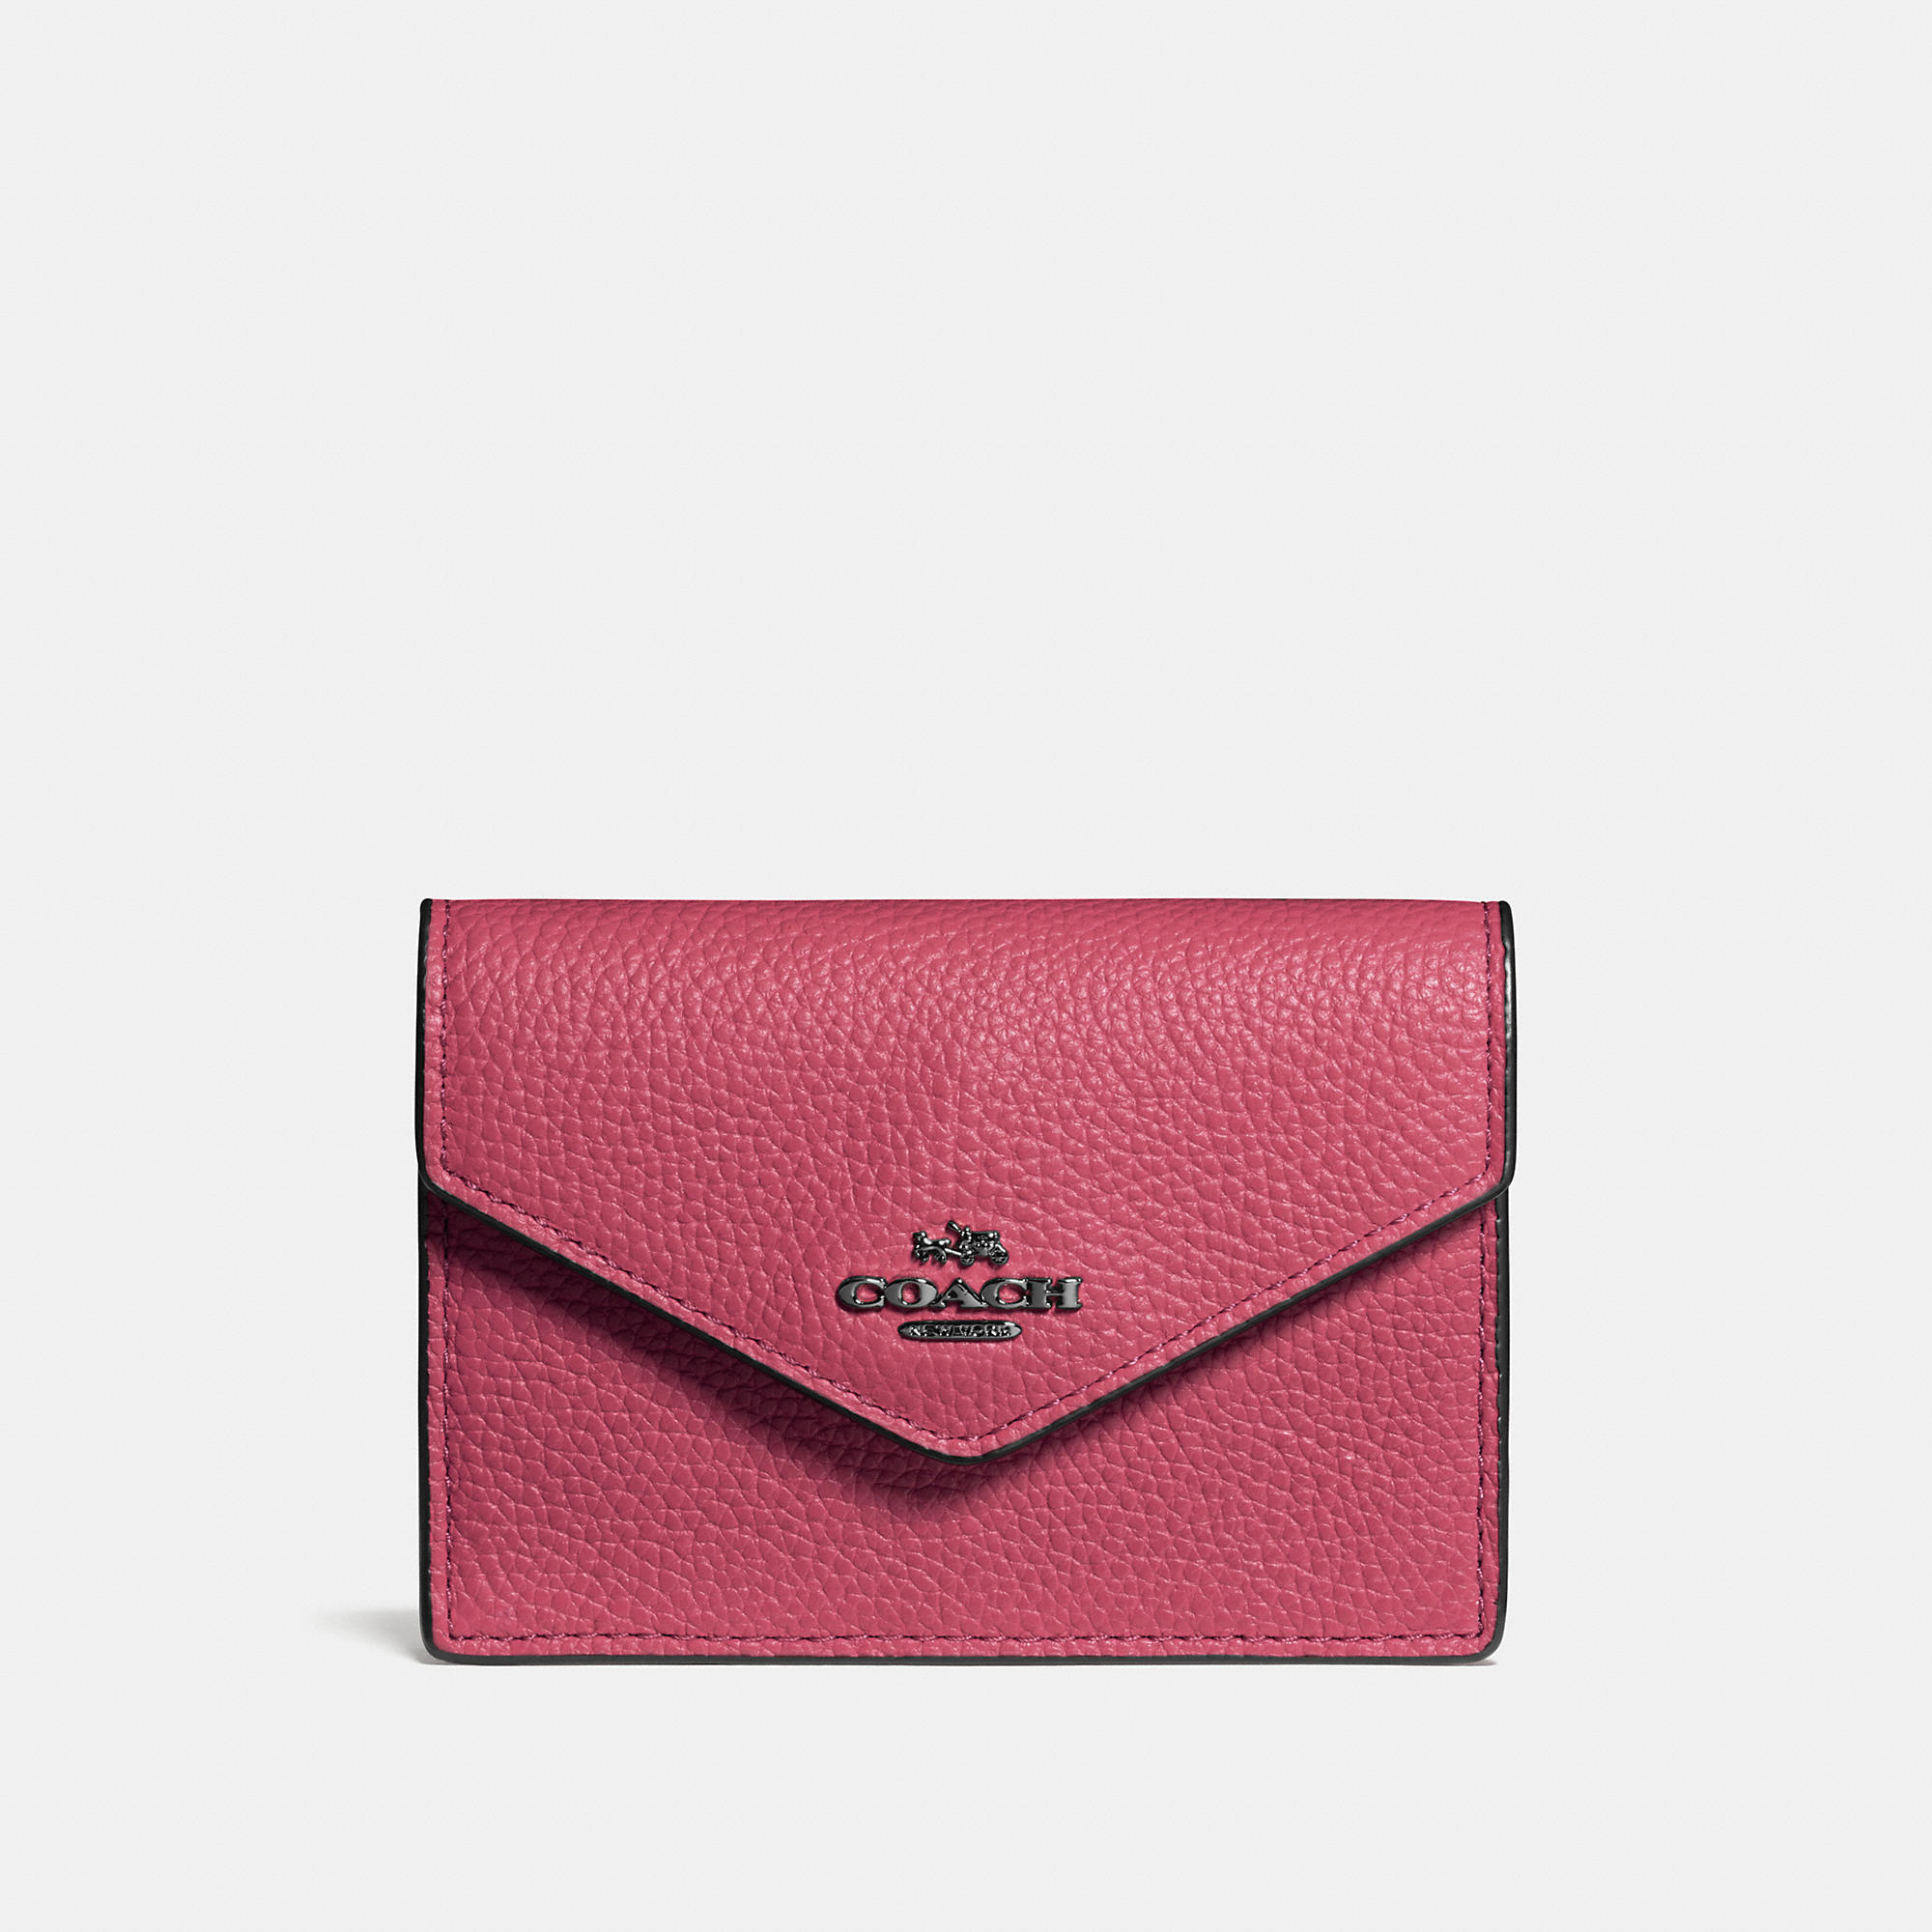 Coach Envelope Card Case In Polished Pebble Leather